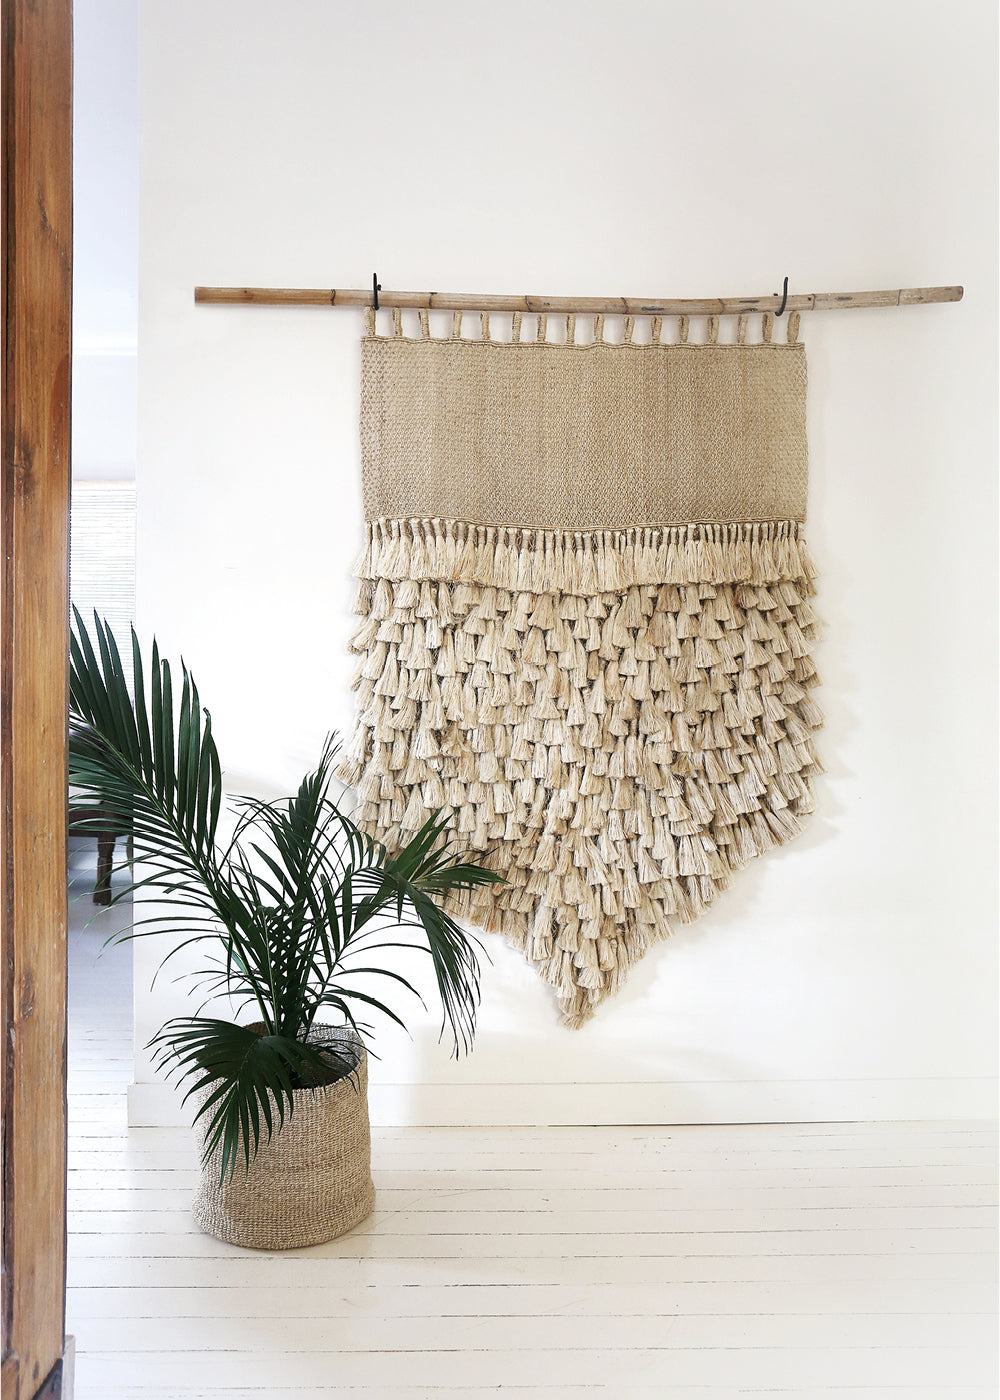 woven wall hangings - how they enhance any space. Natural jute tassel jumbo wall hanging on white wall.